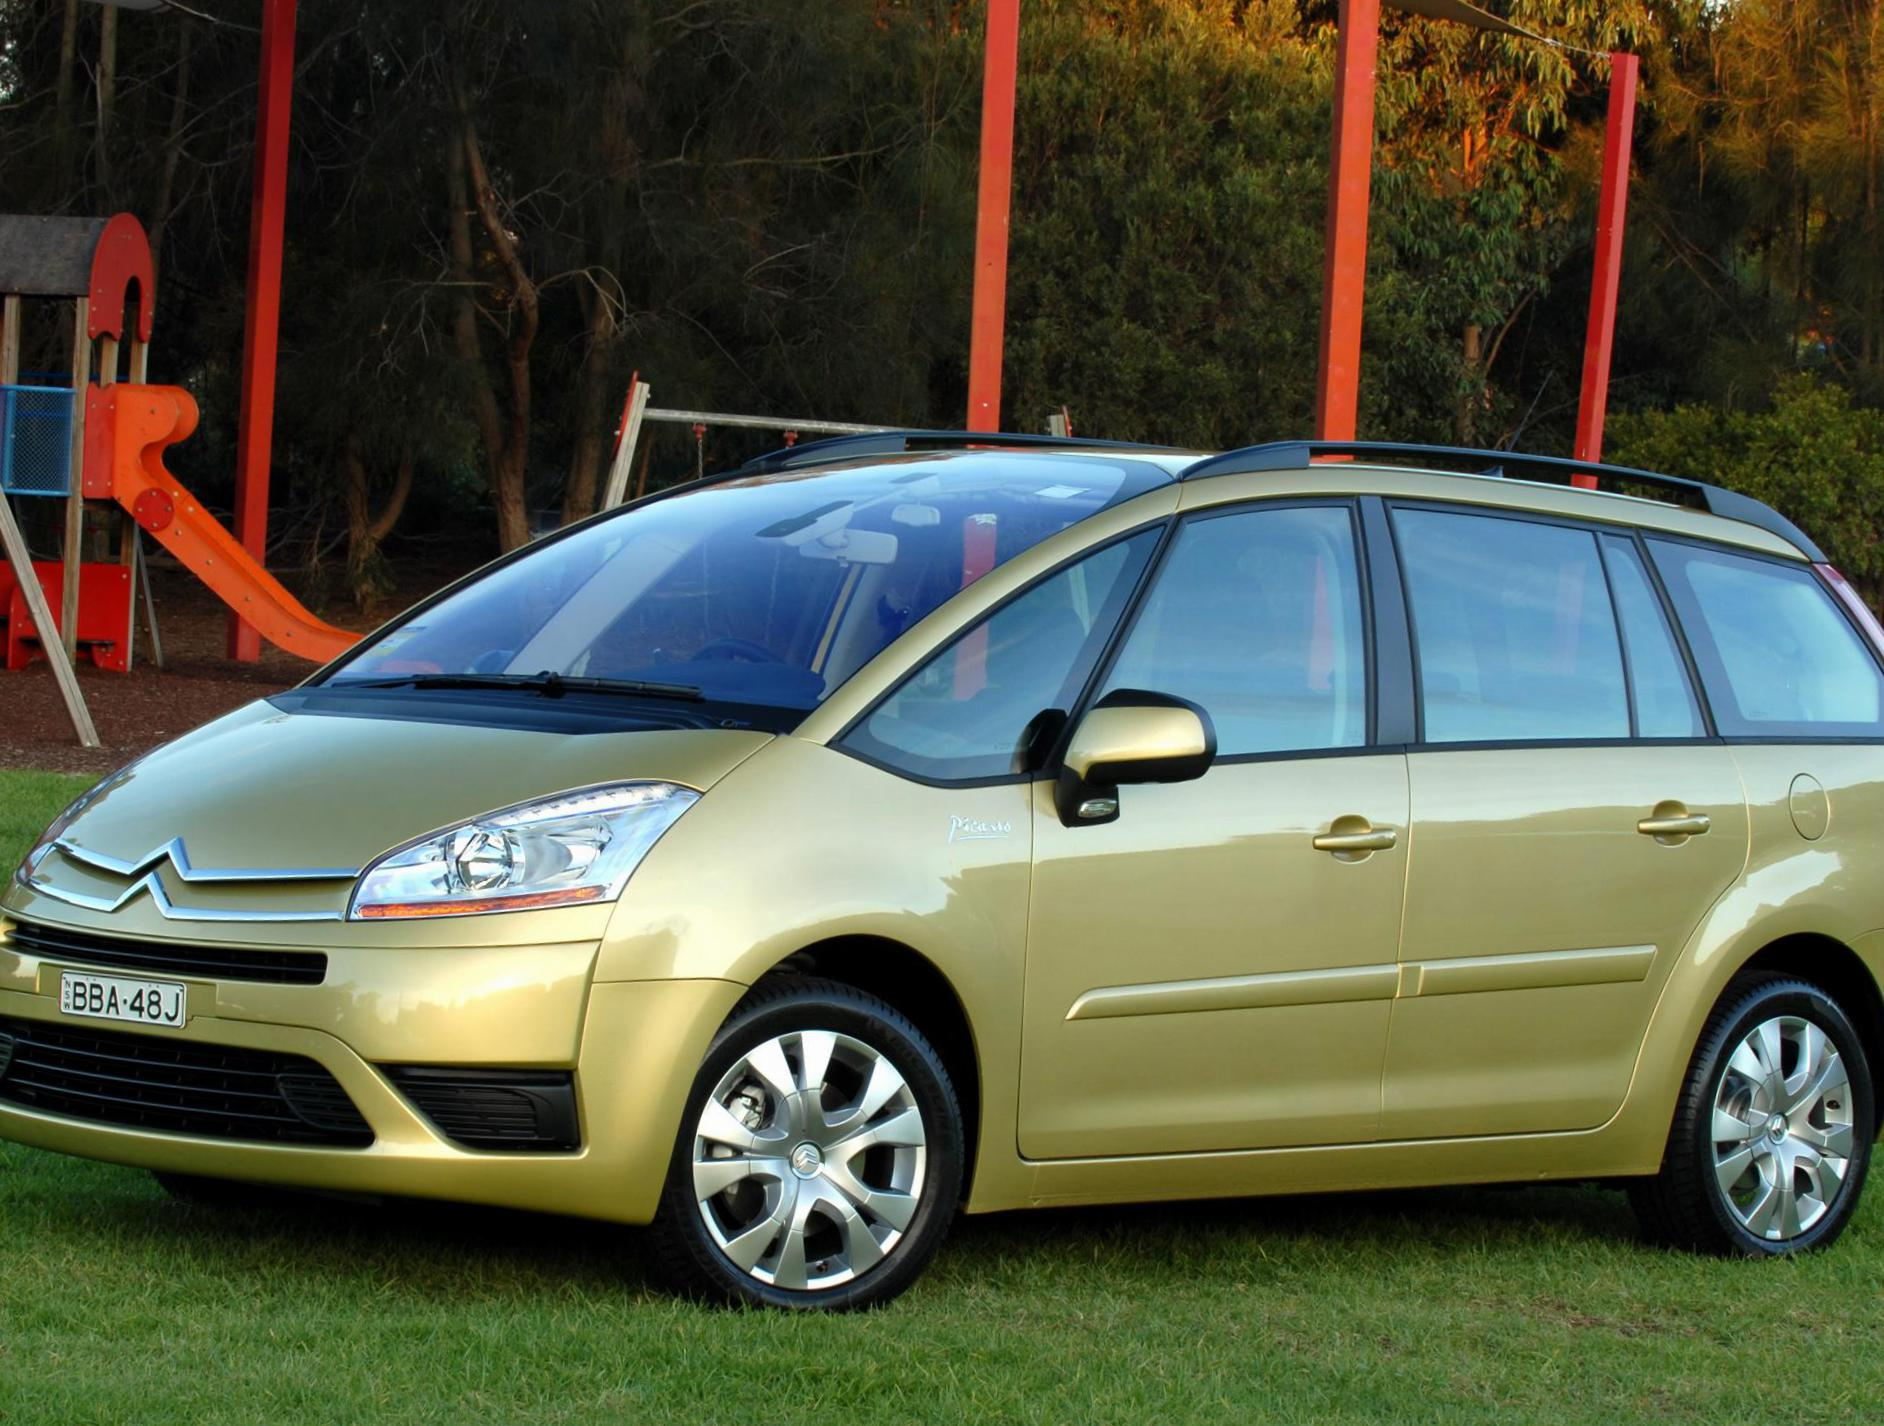 Citroen Grand C4 Picasso approved 2014